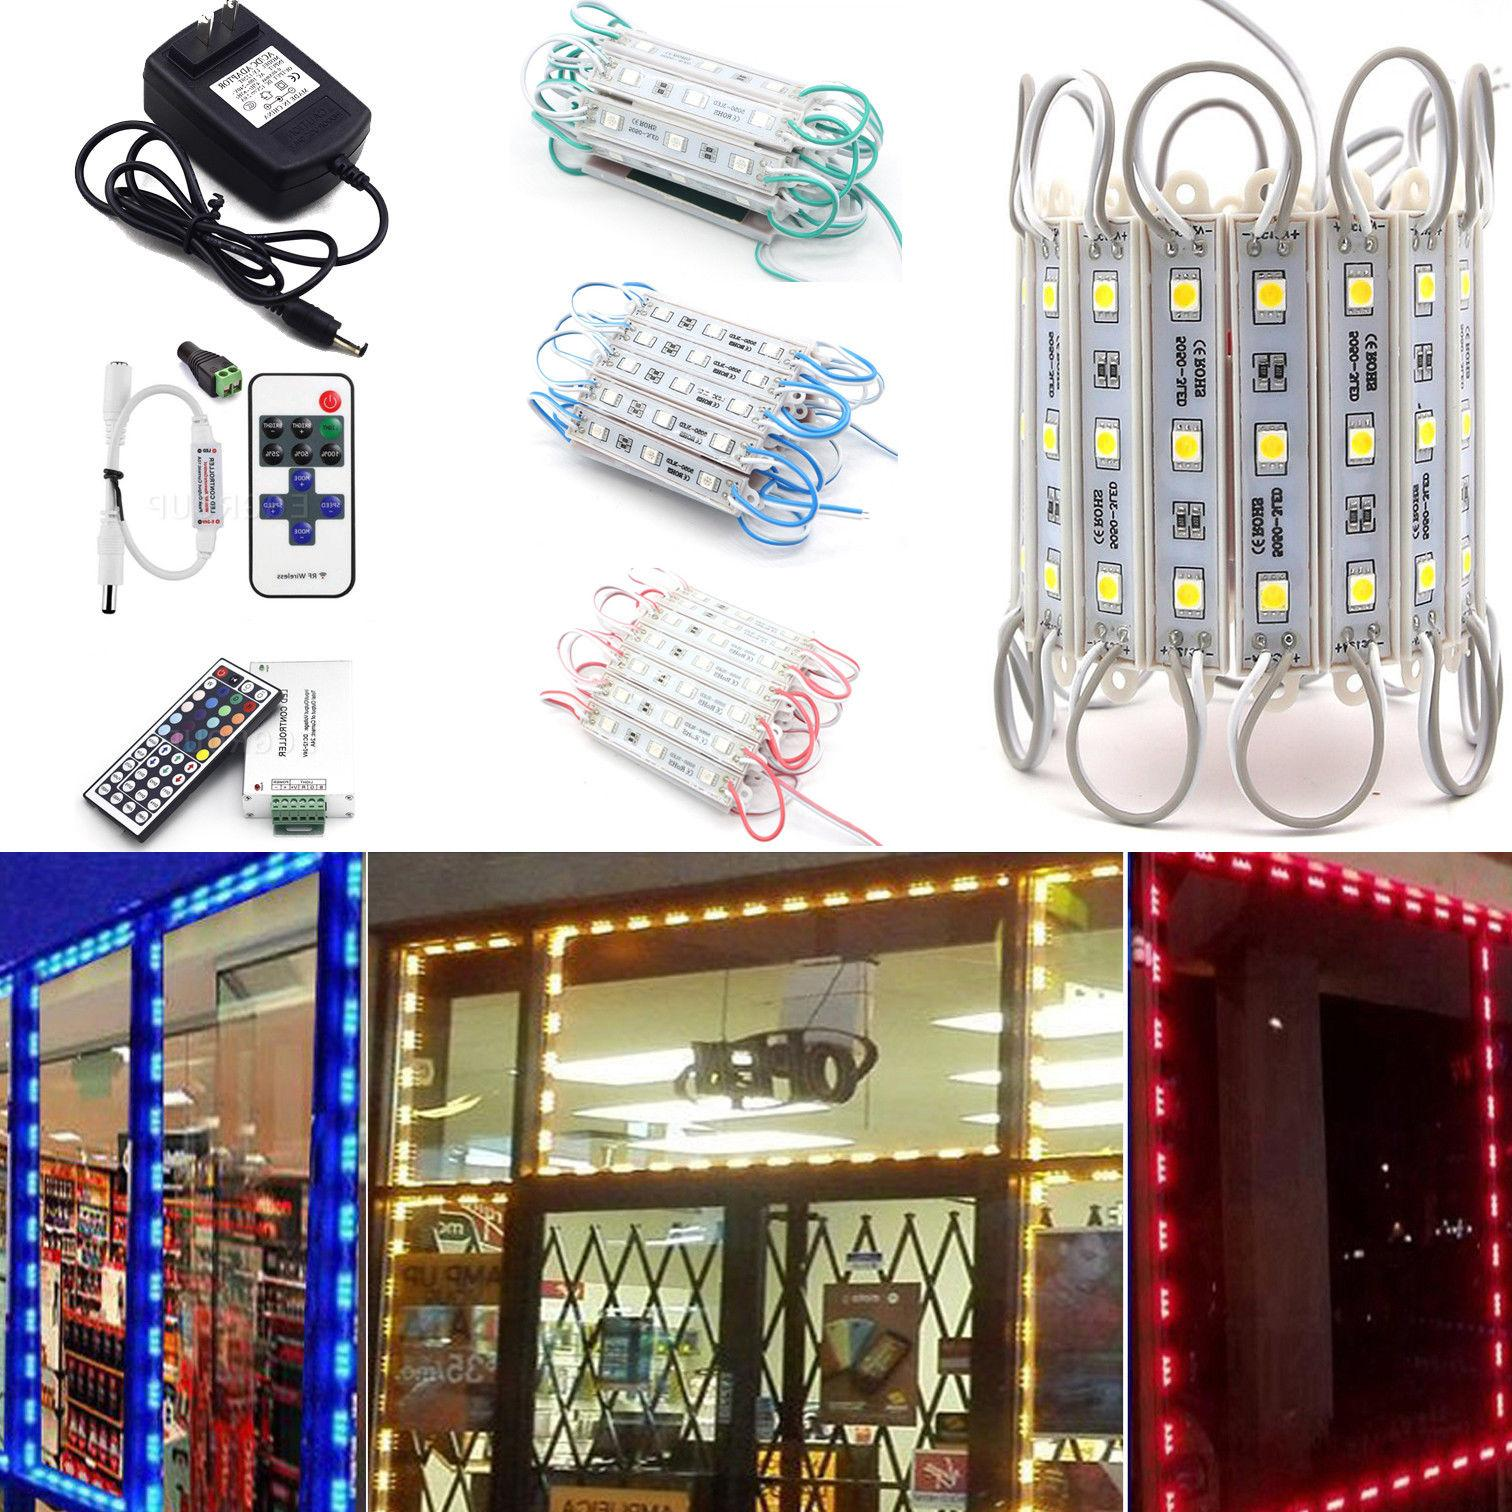 US Brightest Front LED Window Light with supply +